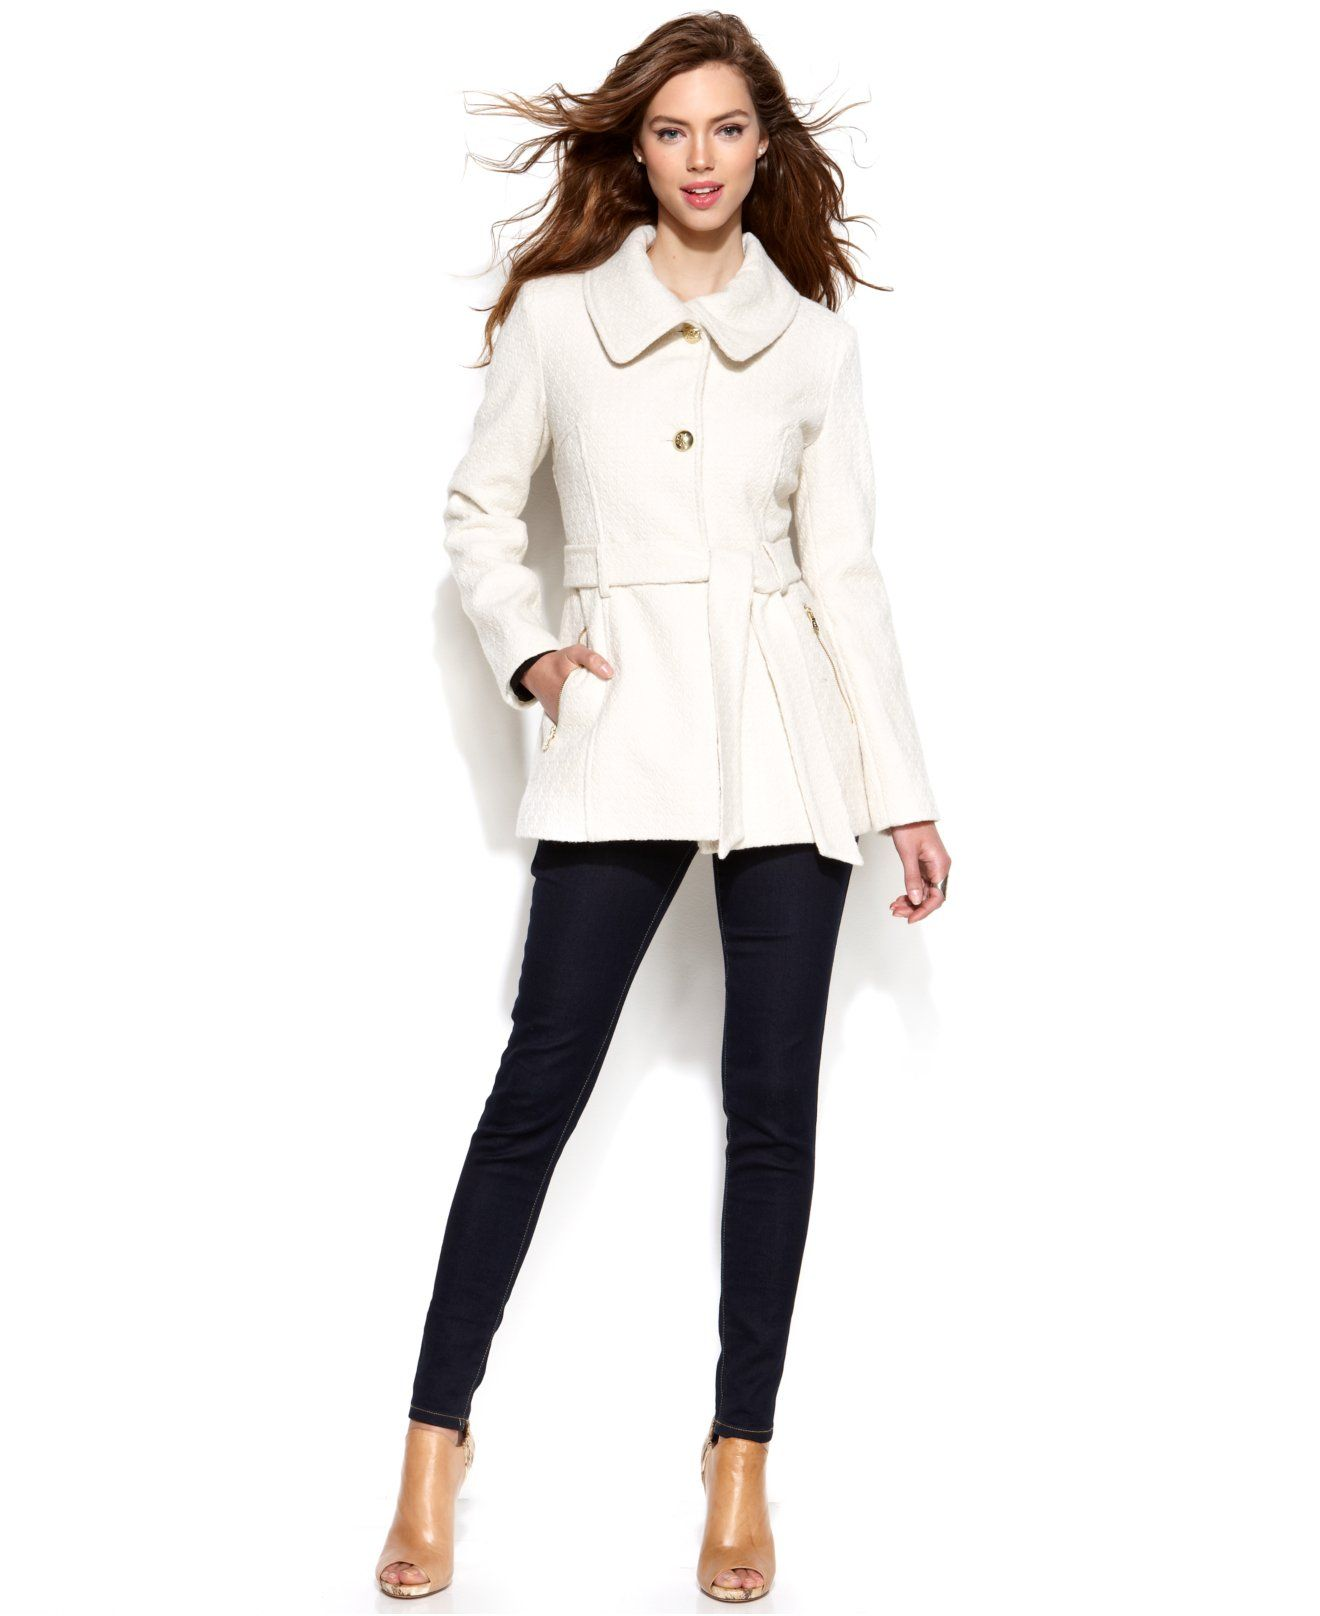 The jacket I pointed out to Ryan at Macys today :) Jessica Simpson Wool-Blend A-Line Jacket - Coats - Women - Macy's